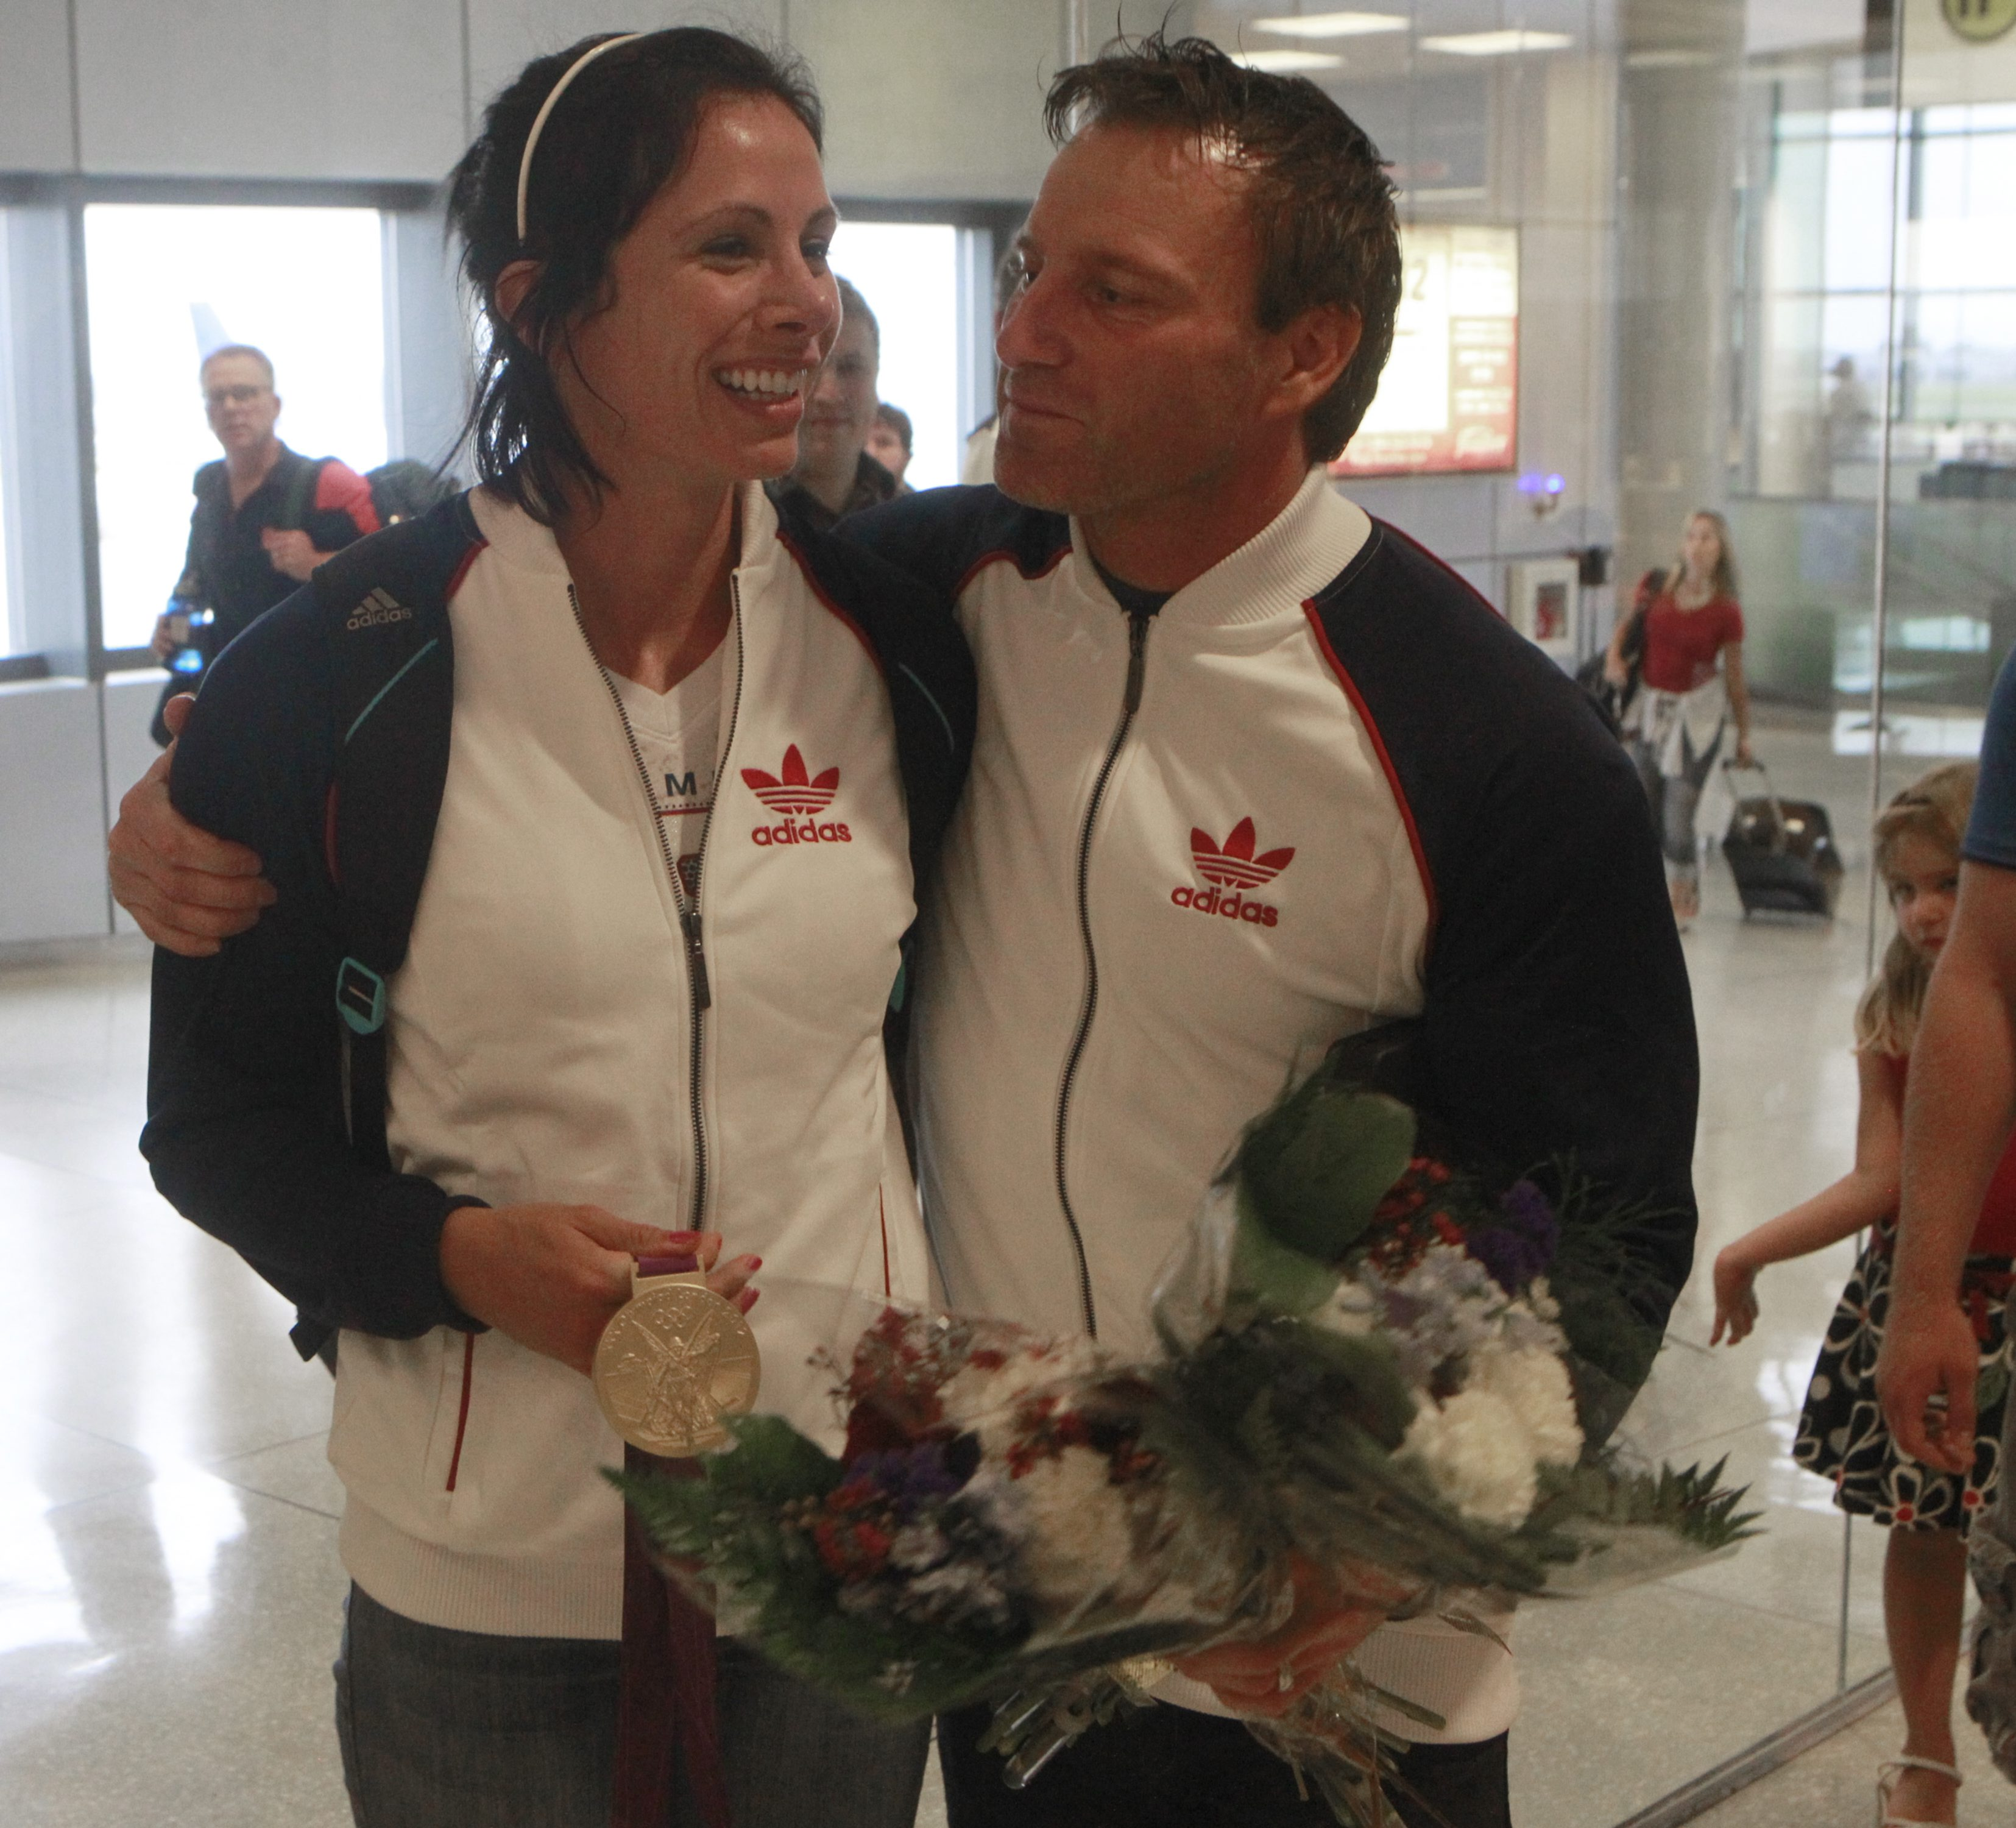 Pole vaulter Jenn Suhr and her husband and coach Rick arrive at the Buffalo Niagara airport following Jenn winning gold in London. (John Hickey / Buffalo News)